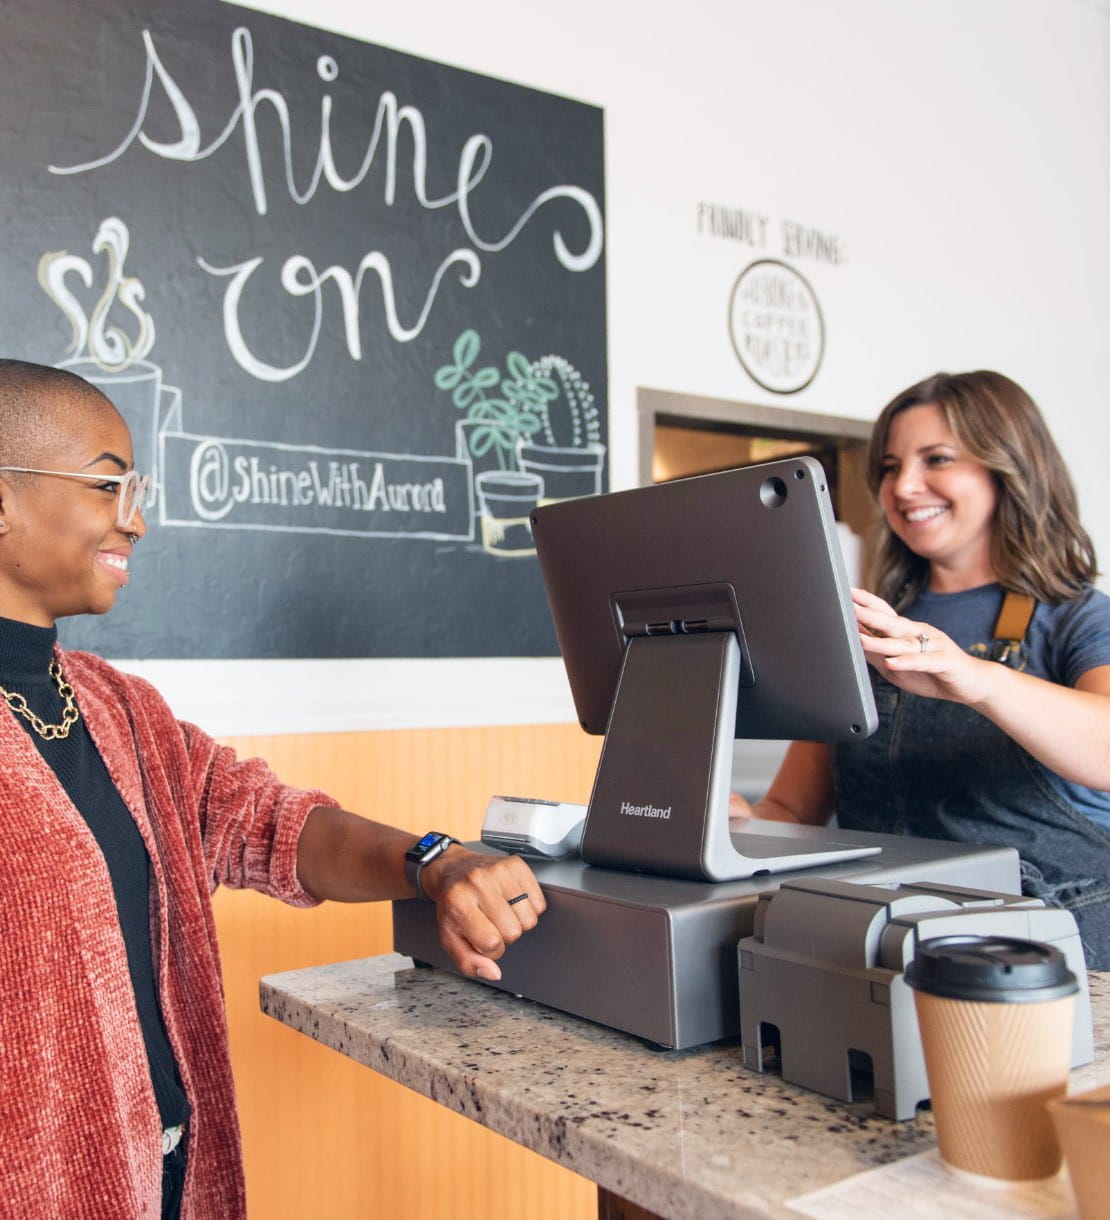 A coffee shop worker processing customer's payment